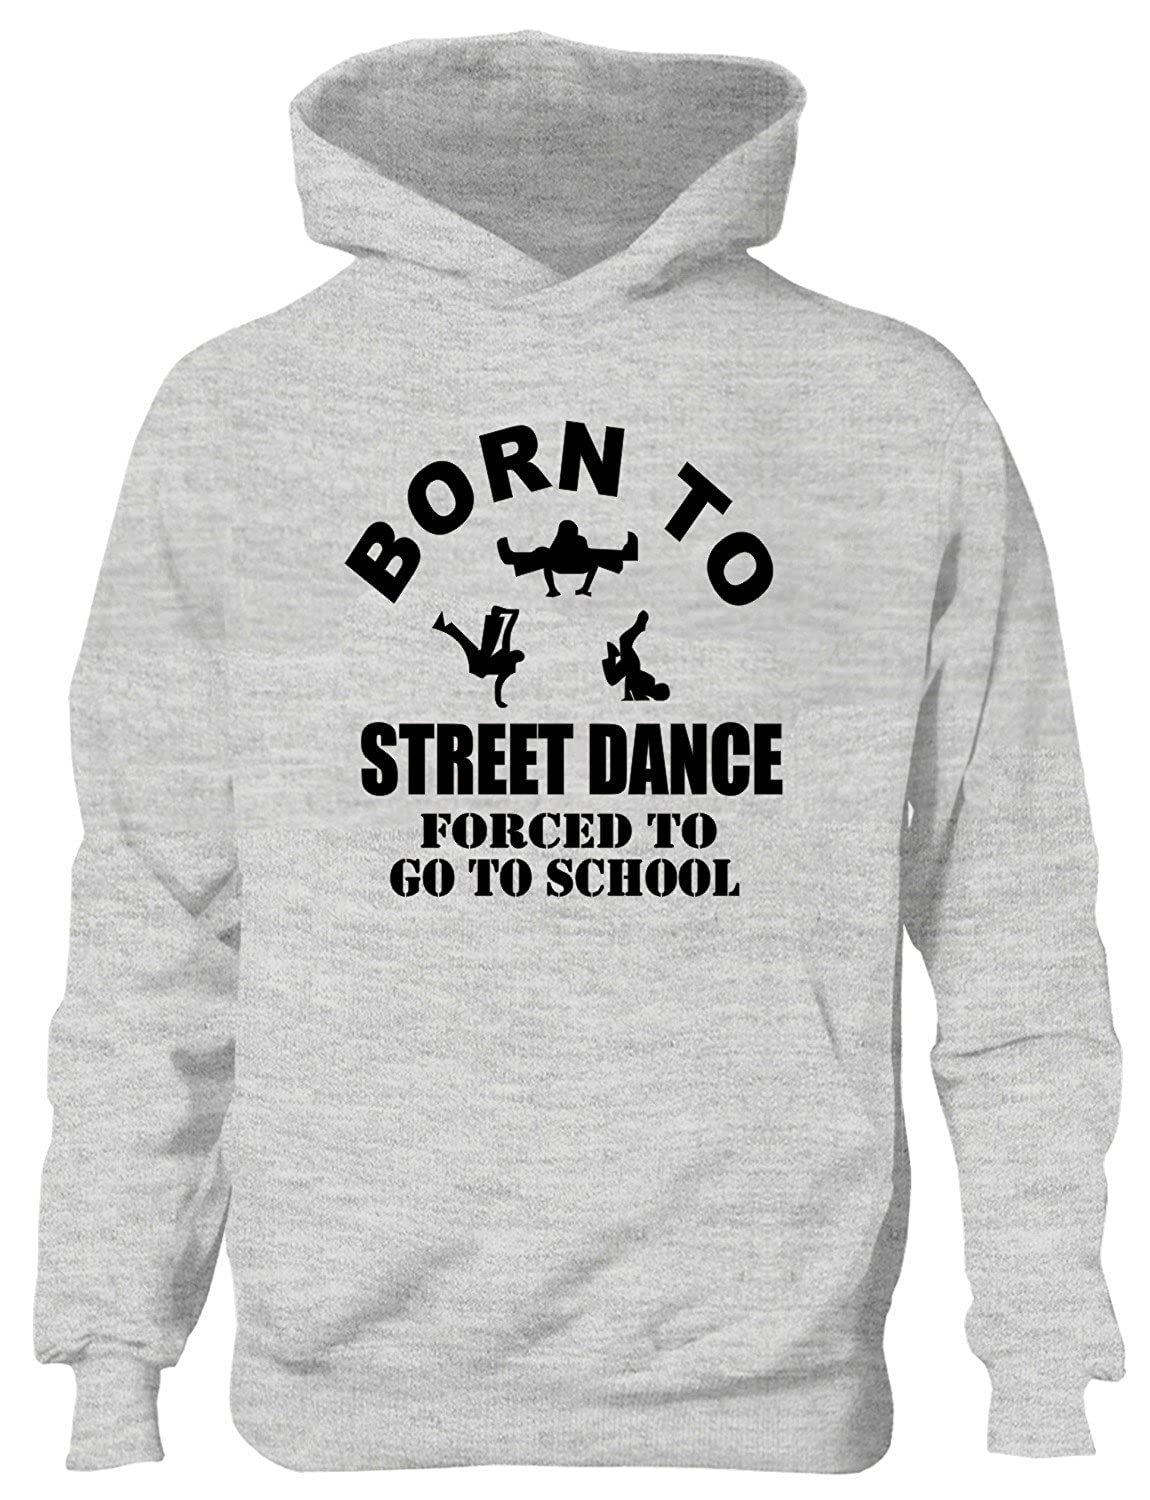 Born to Street Dance Forced to Go to School Kids Hoodie Sizes 1-13 Years